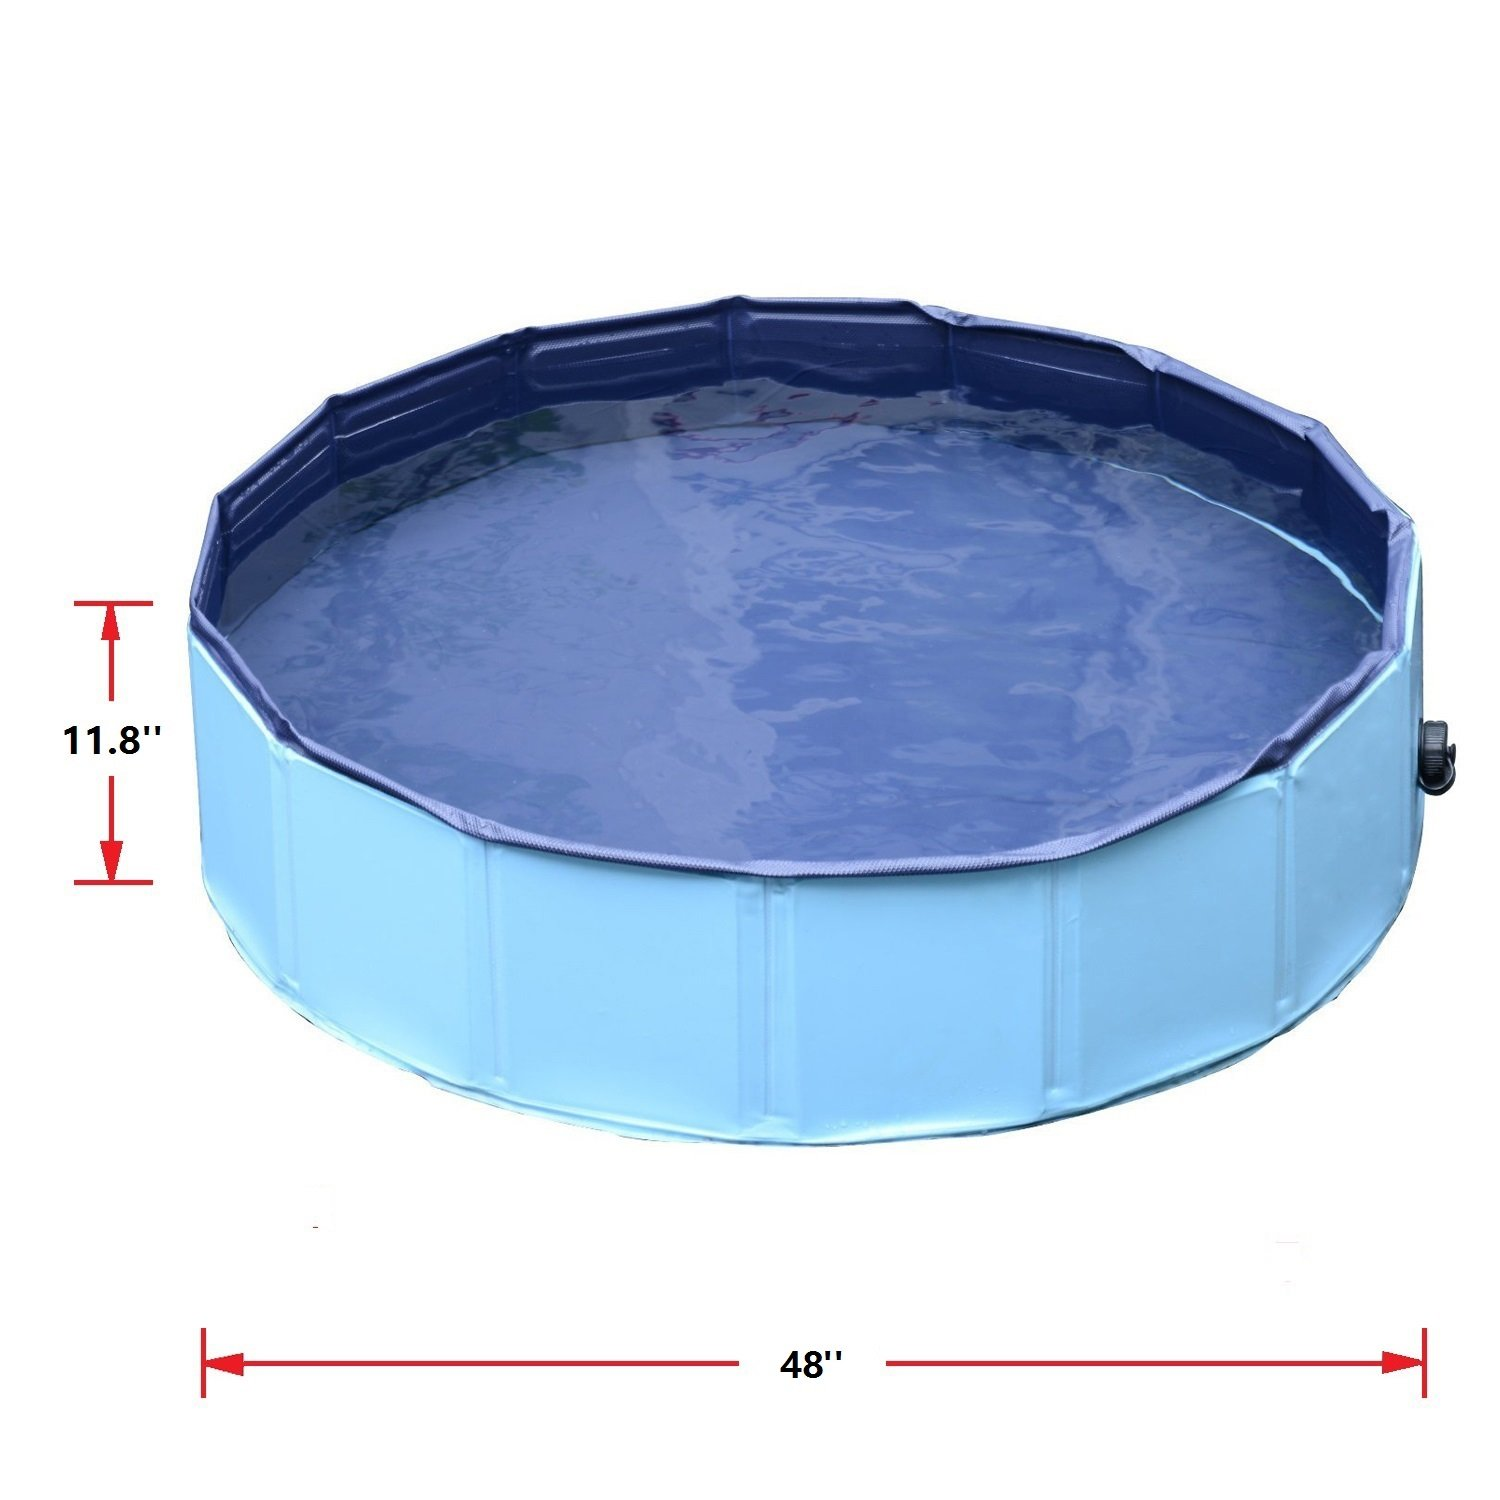 Fine How To Paint A Bathtub Big Paint For Bathtub Shaped How To Paint Your Bathtub Bathtub Refinishing Service Young Repaint Tub Green Painting Bath Tub